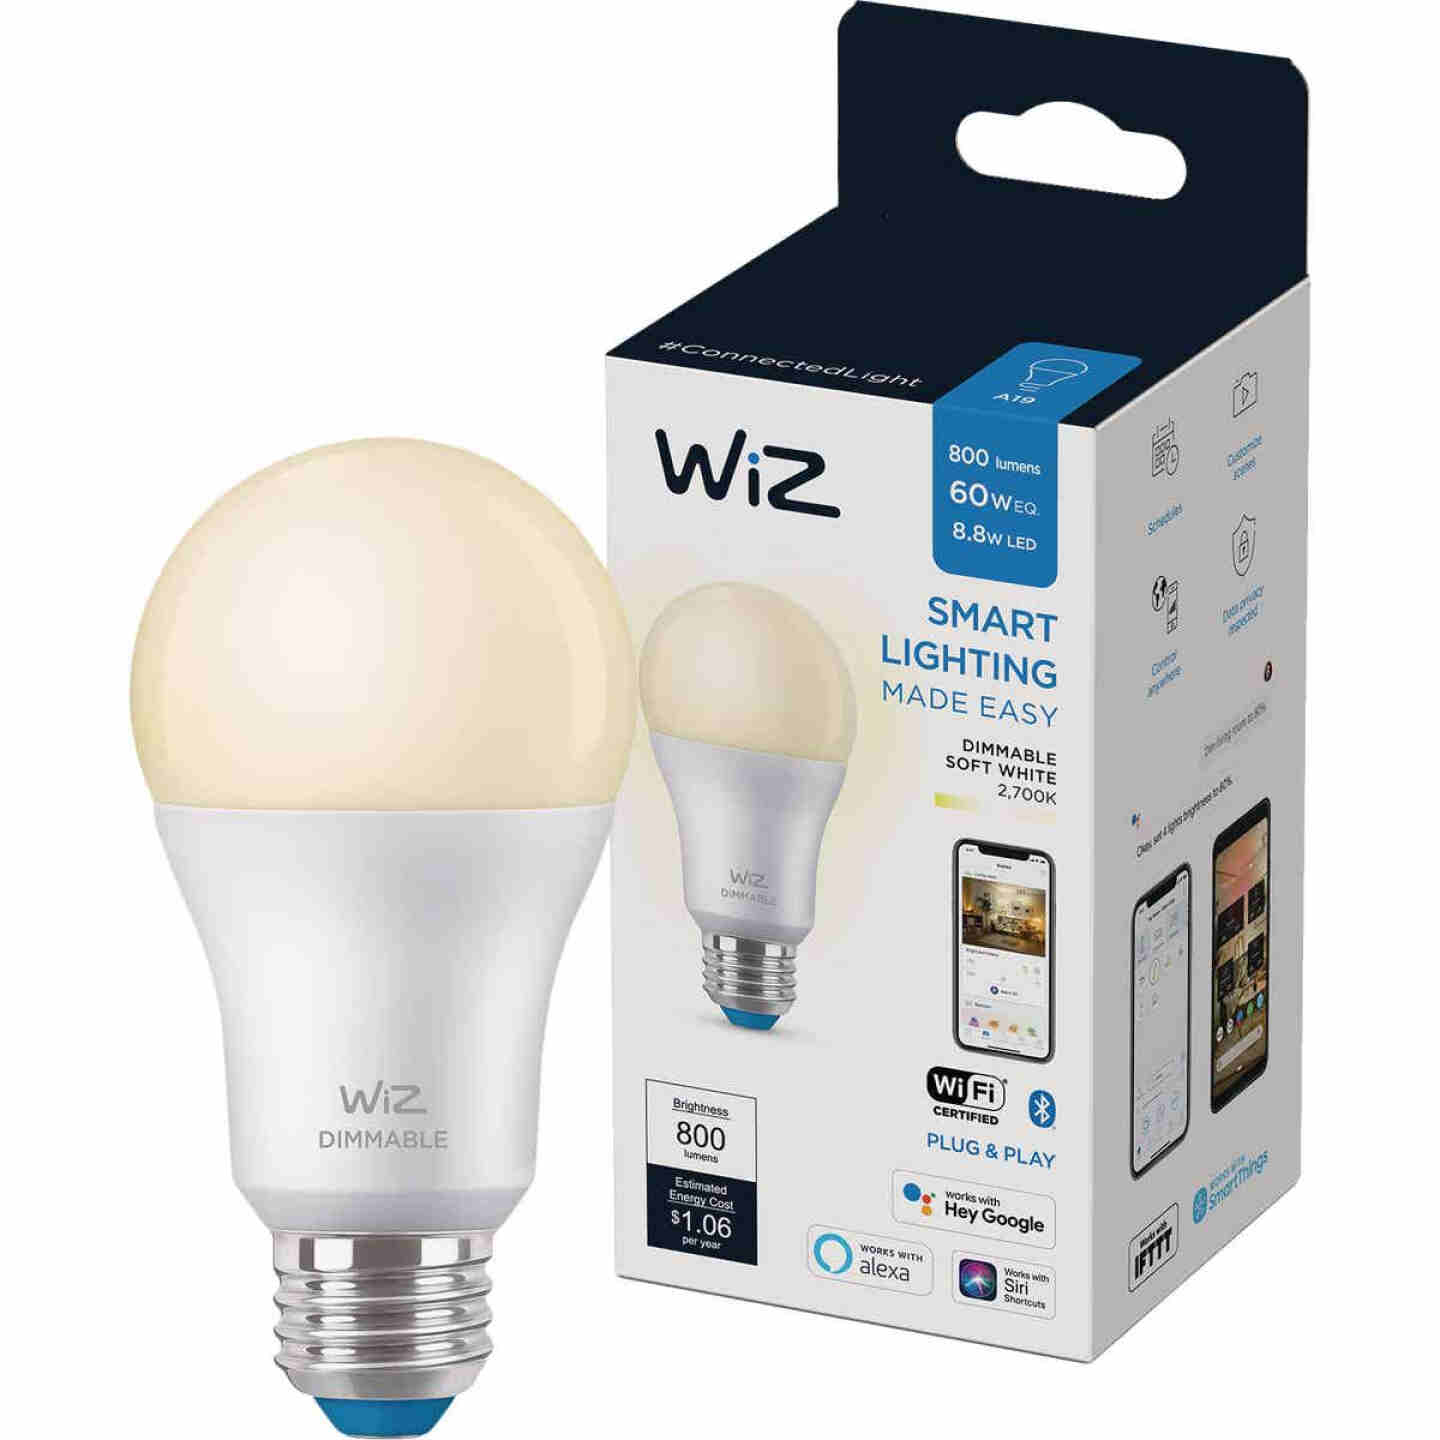 Wiz 60W Equivalent Soft White A19 Medium Dimmable Smart LED Light Bulb Image 2